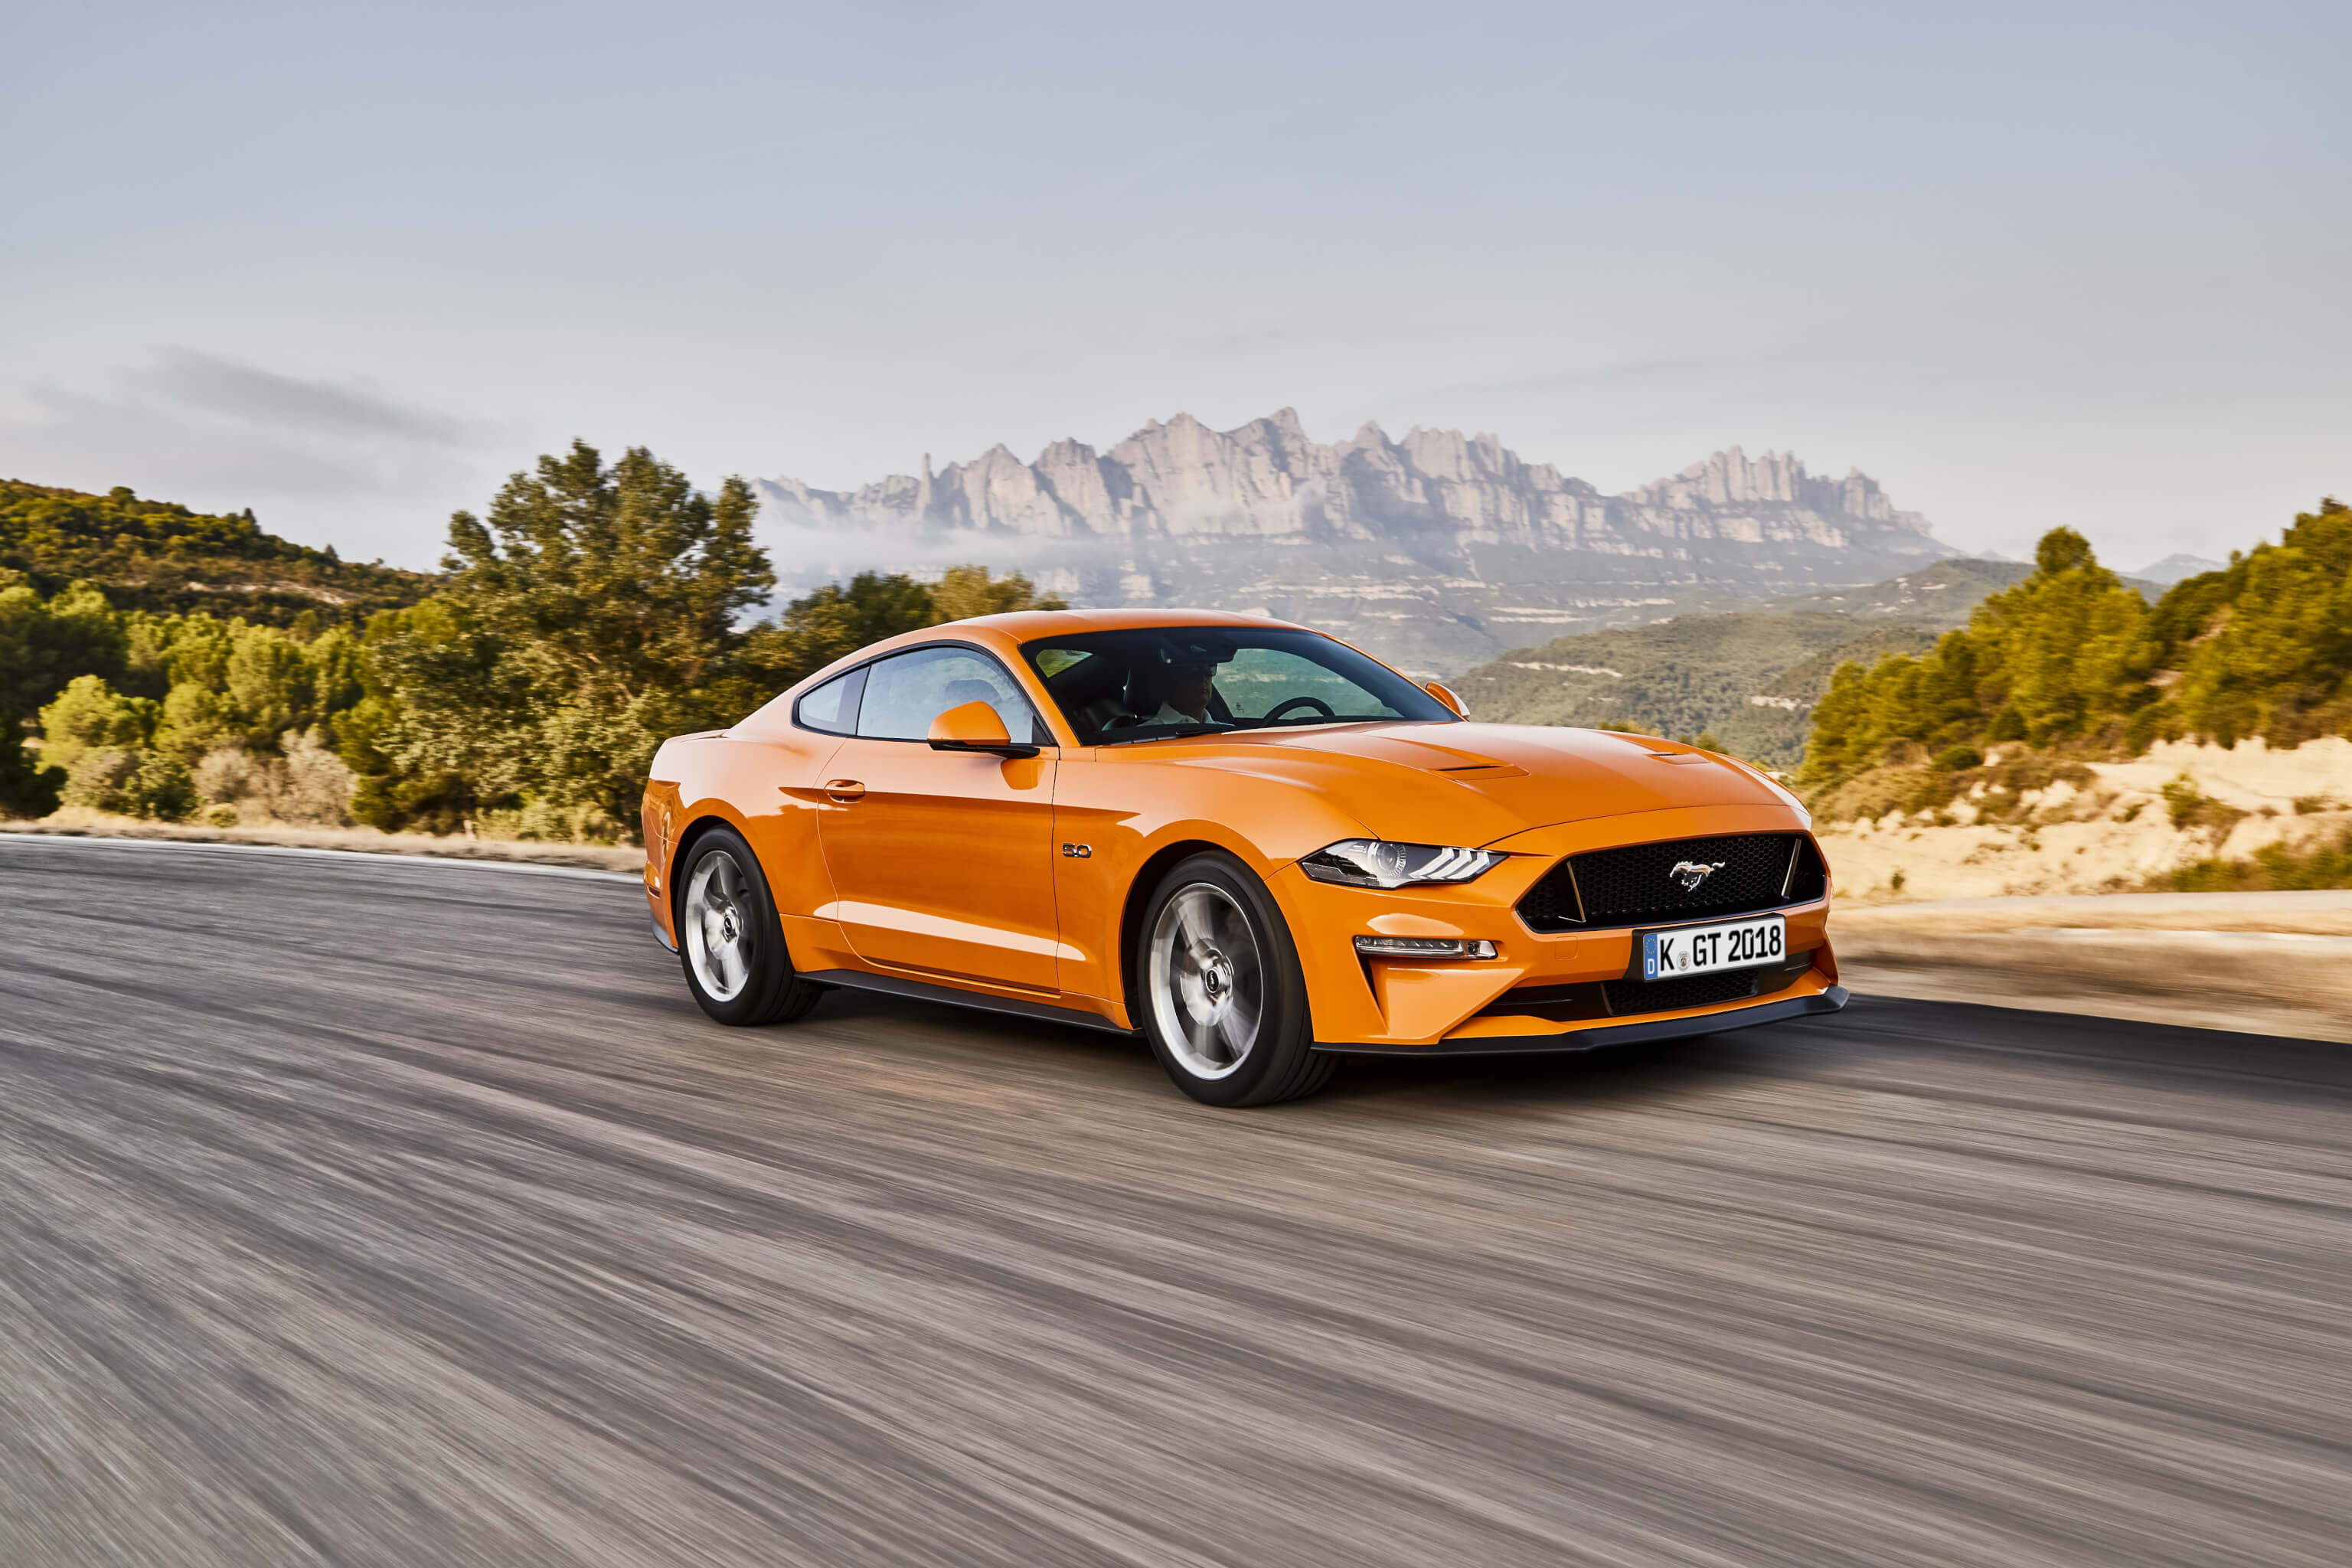 Ford Mustang 5.0 V8 Facelift